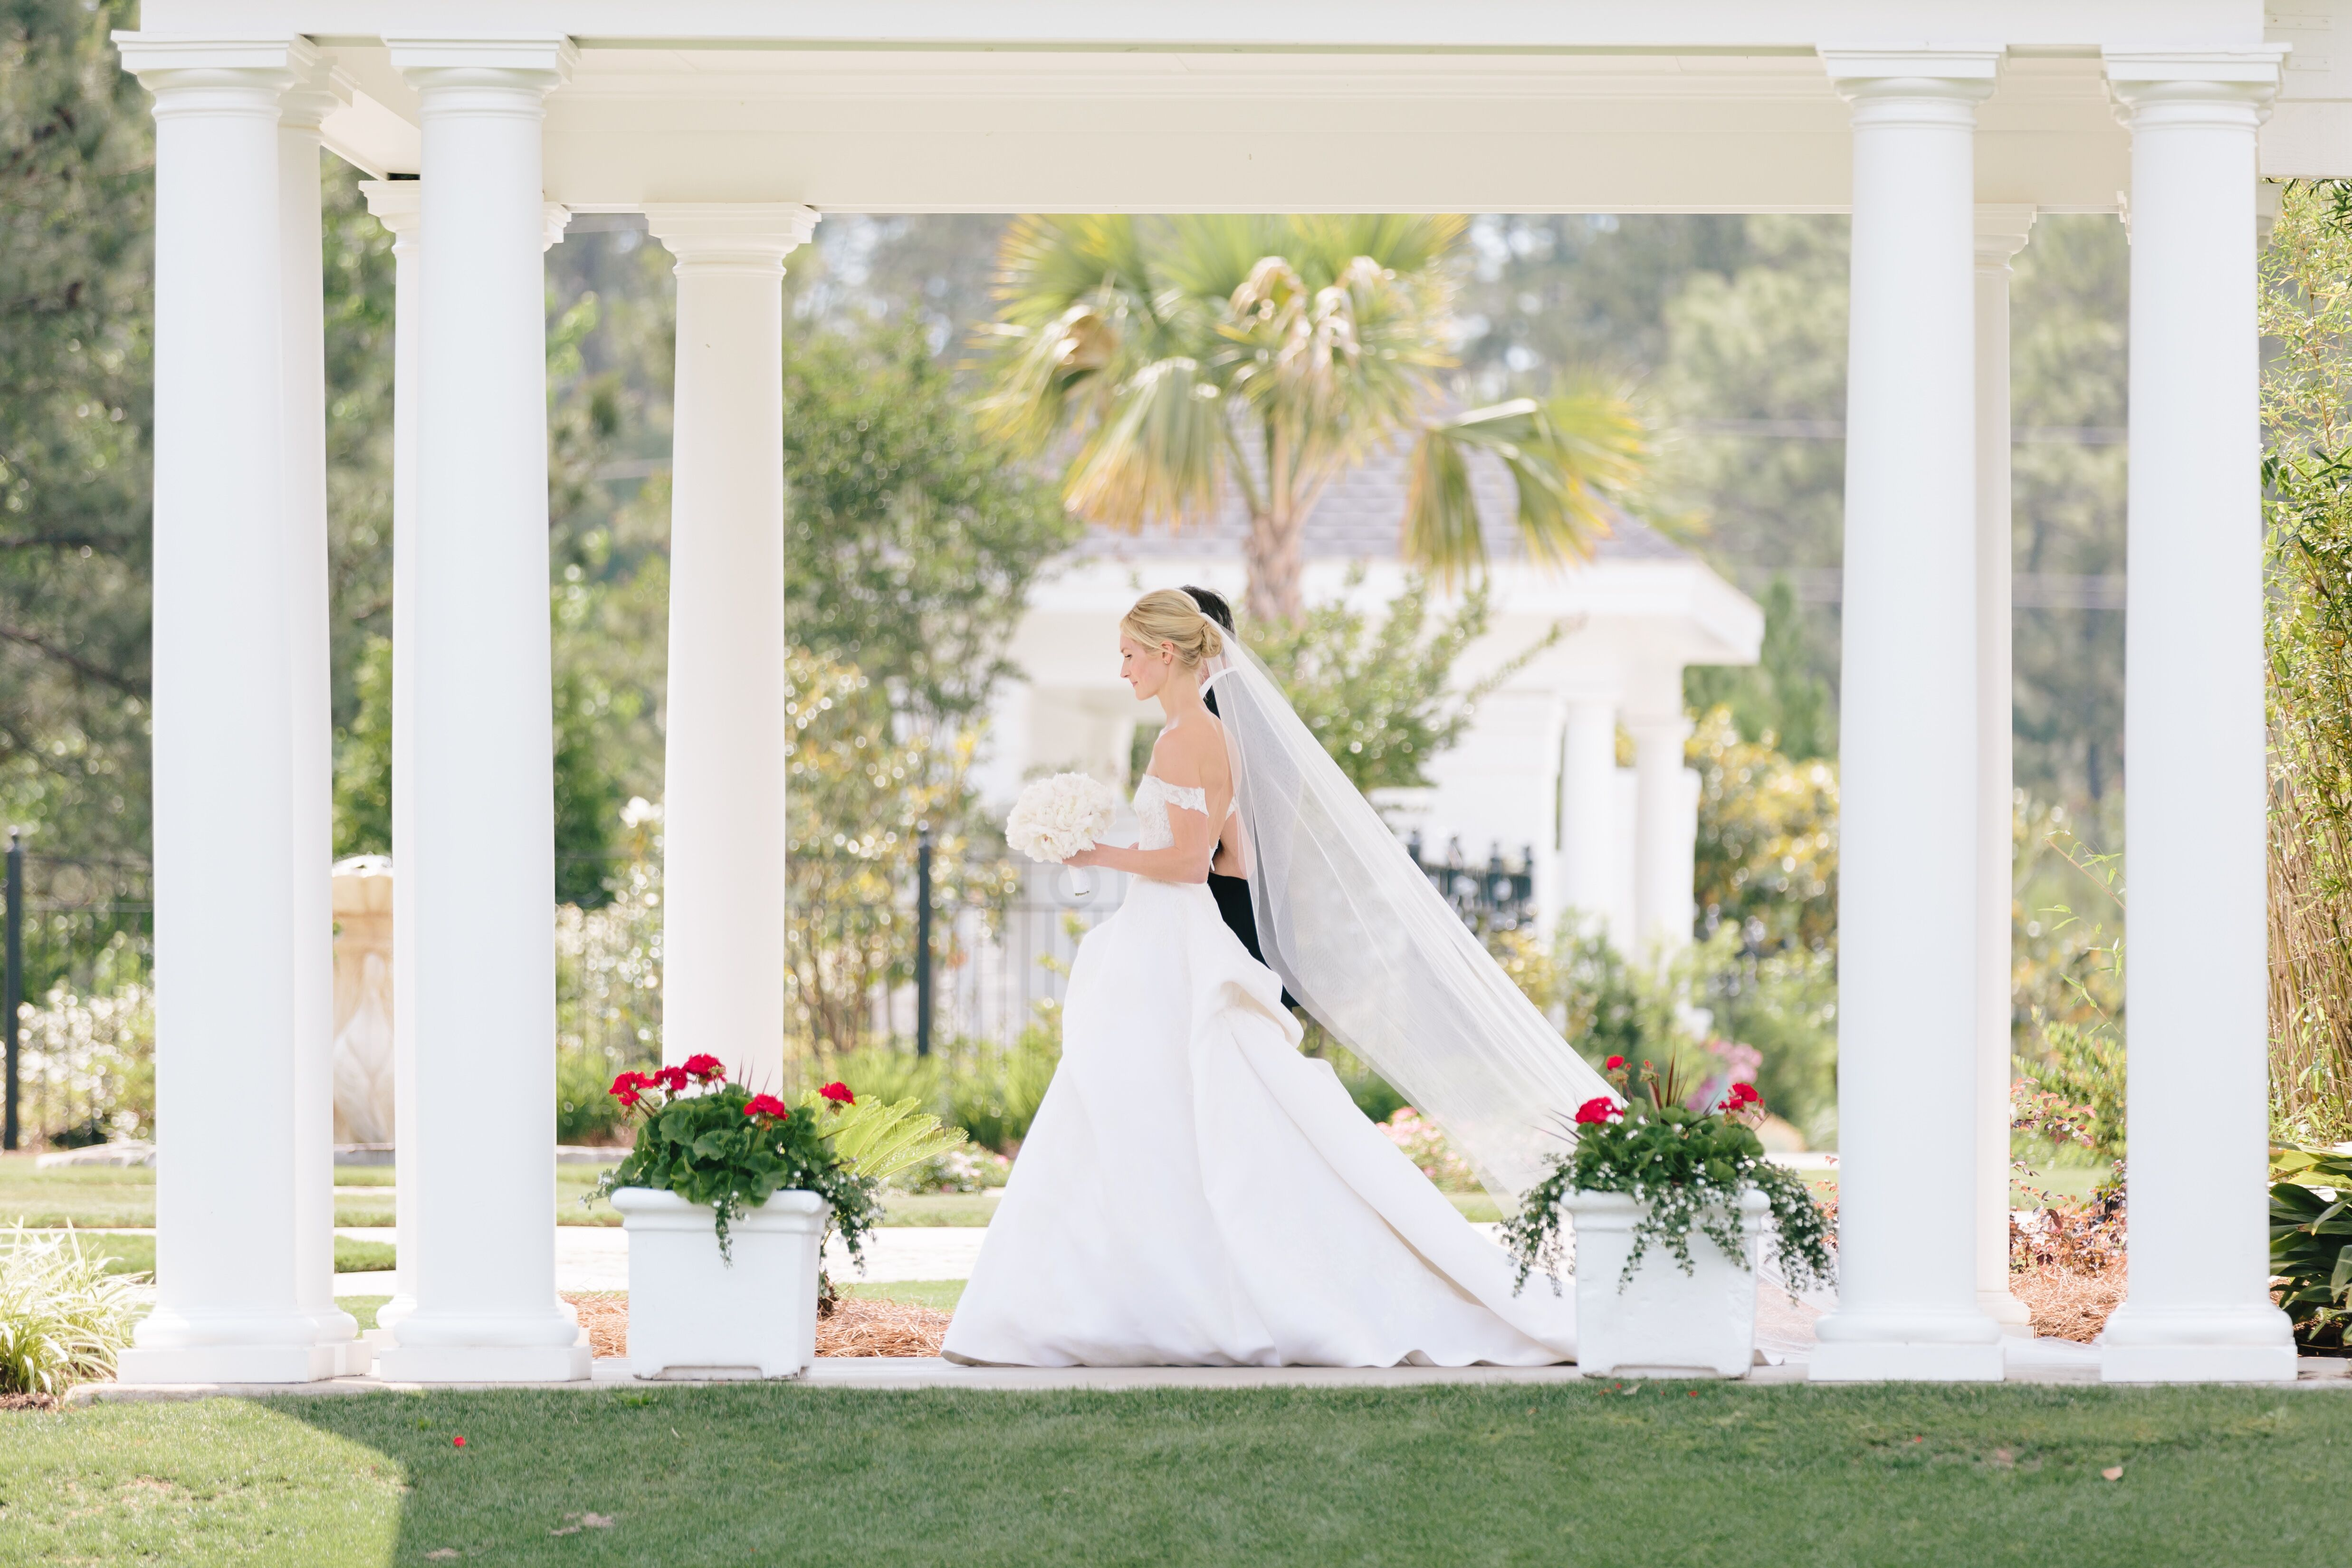 Wedding Venues In Greenville Sc The Knot